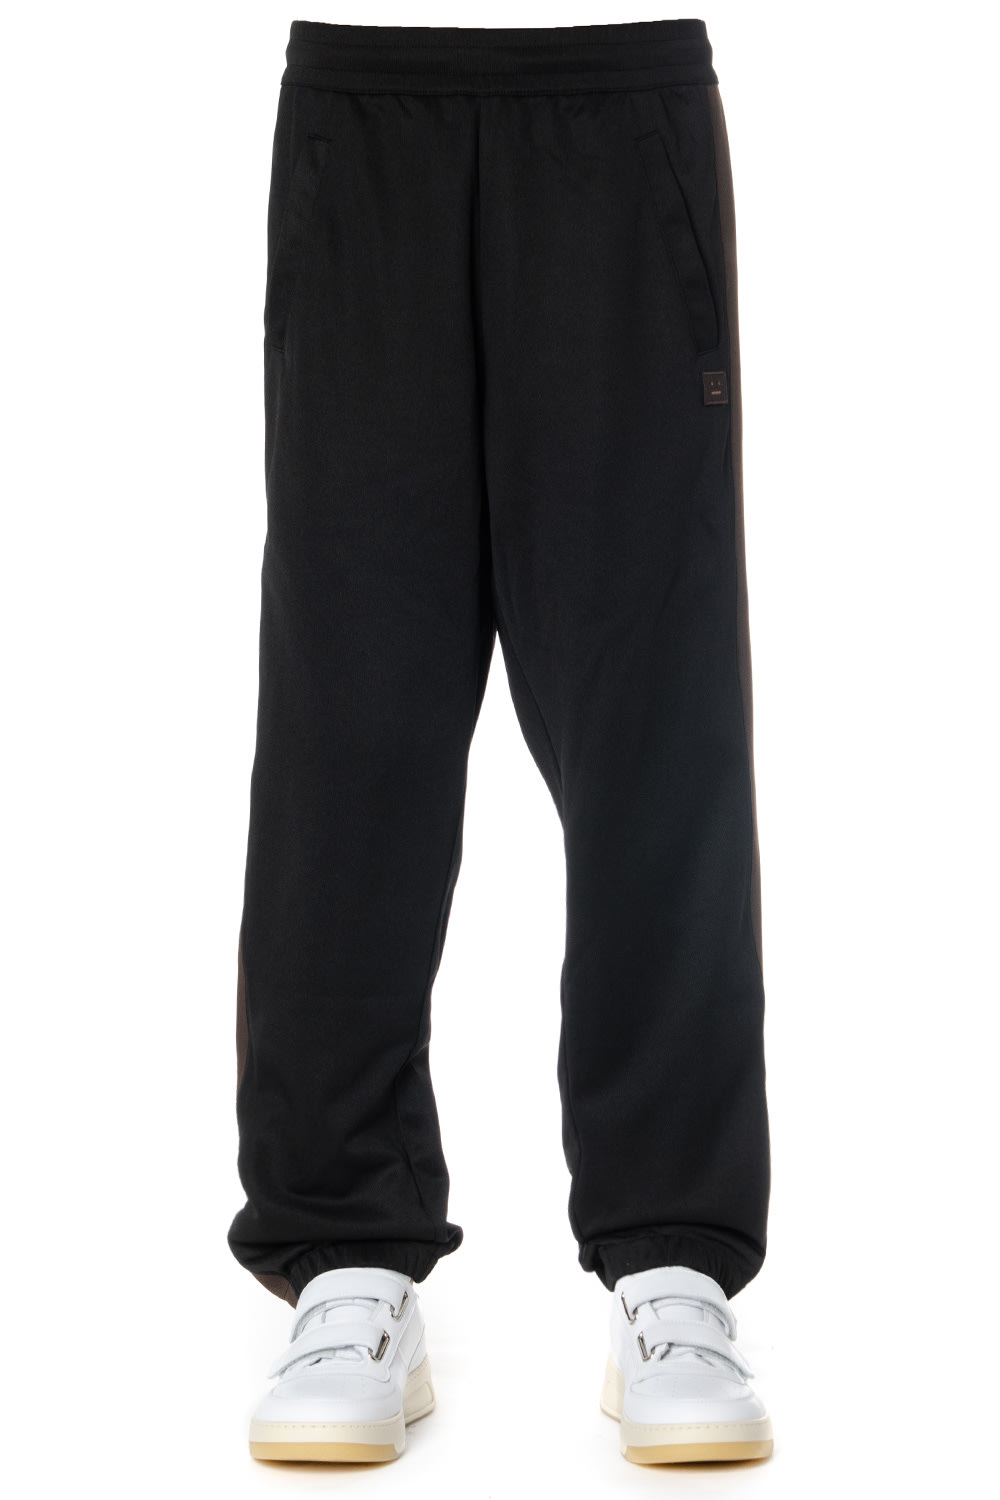 Acne Studios Black Bands Sport Pants